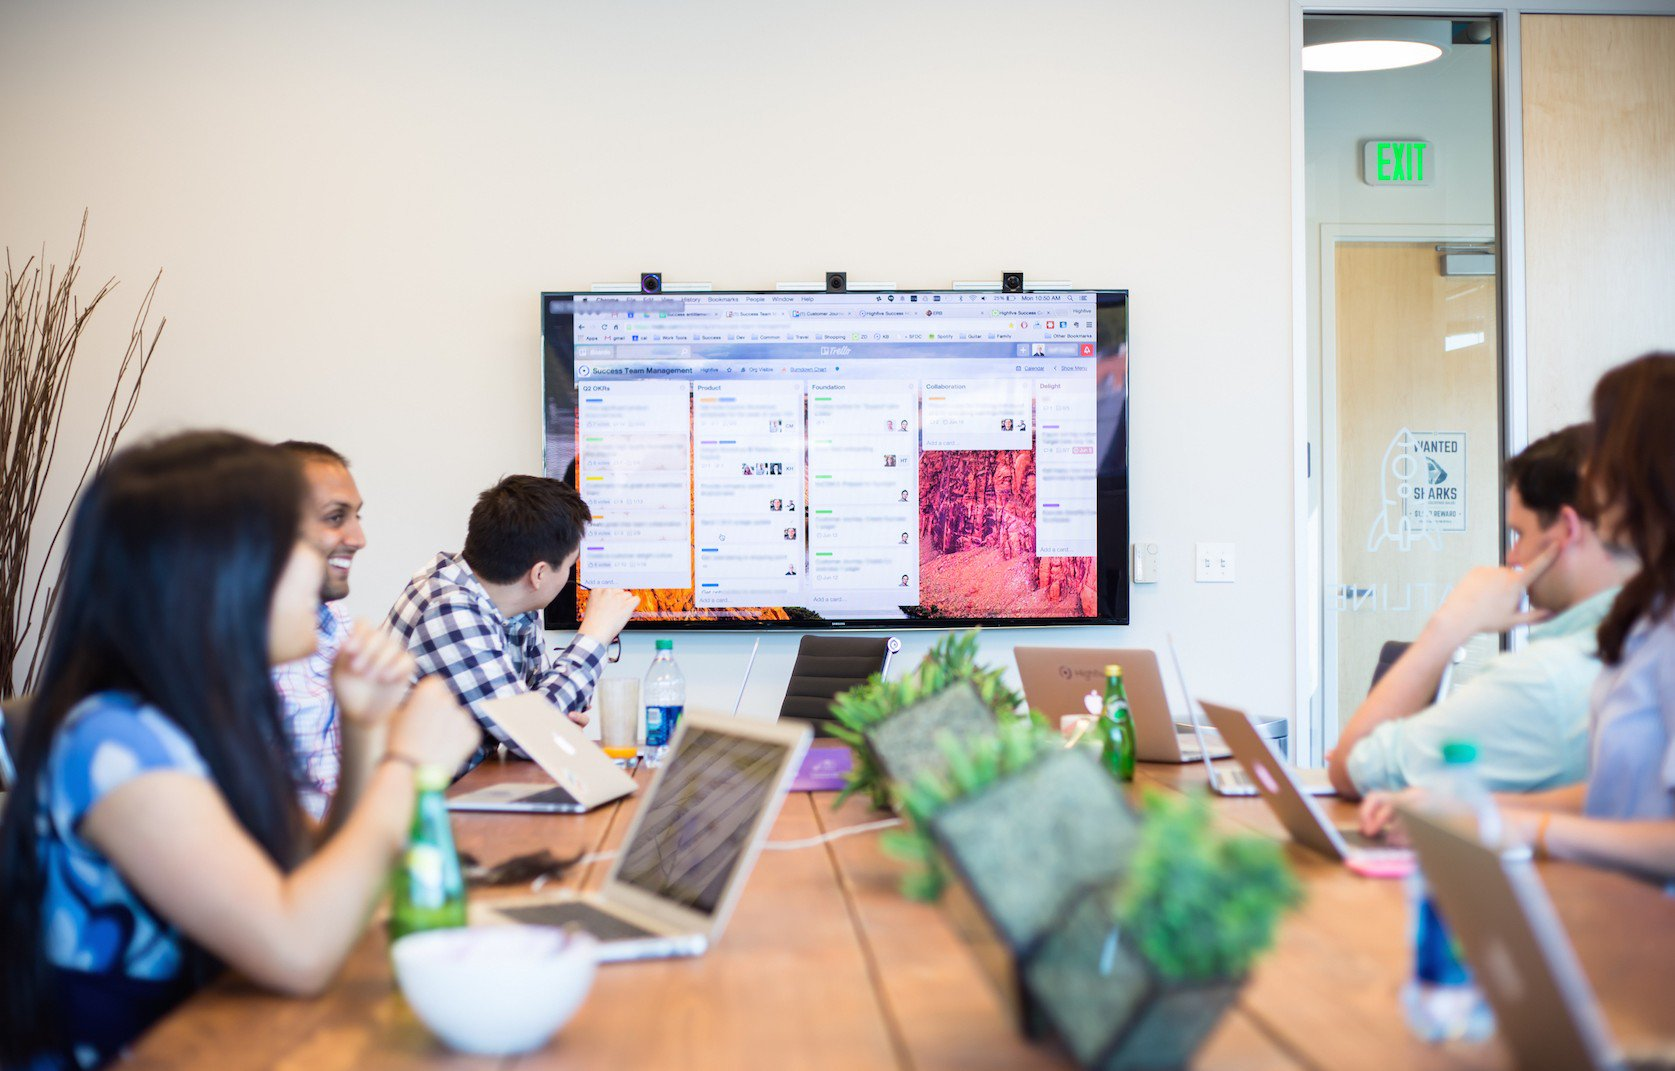 Online Collaboration Tools Improve Team Productivity and Efficiency. Any Proof?